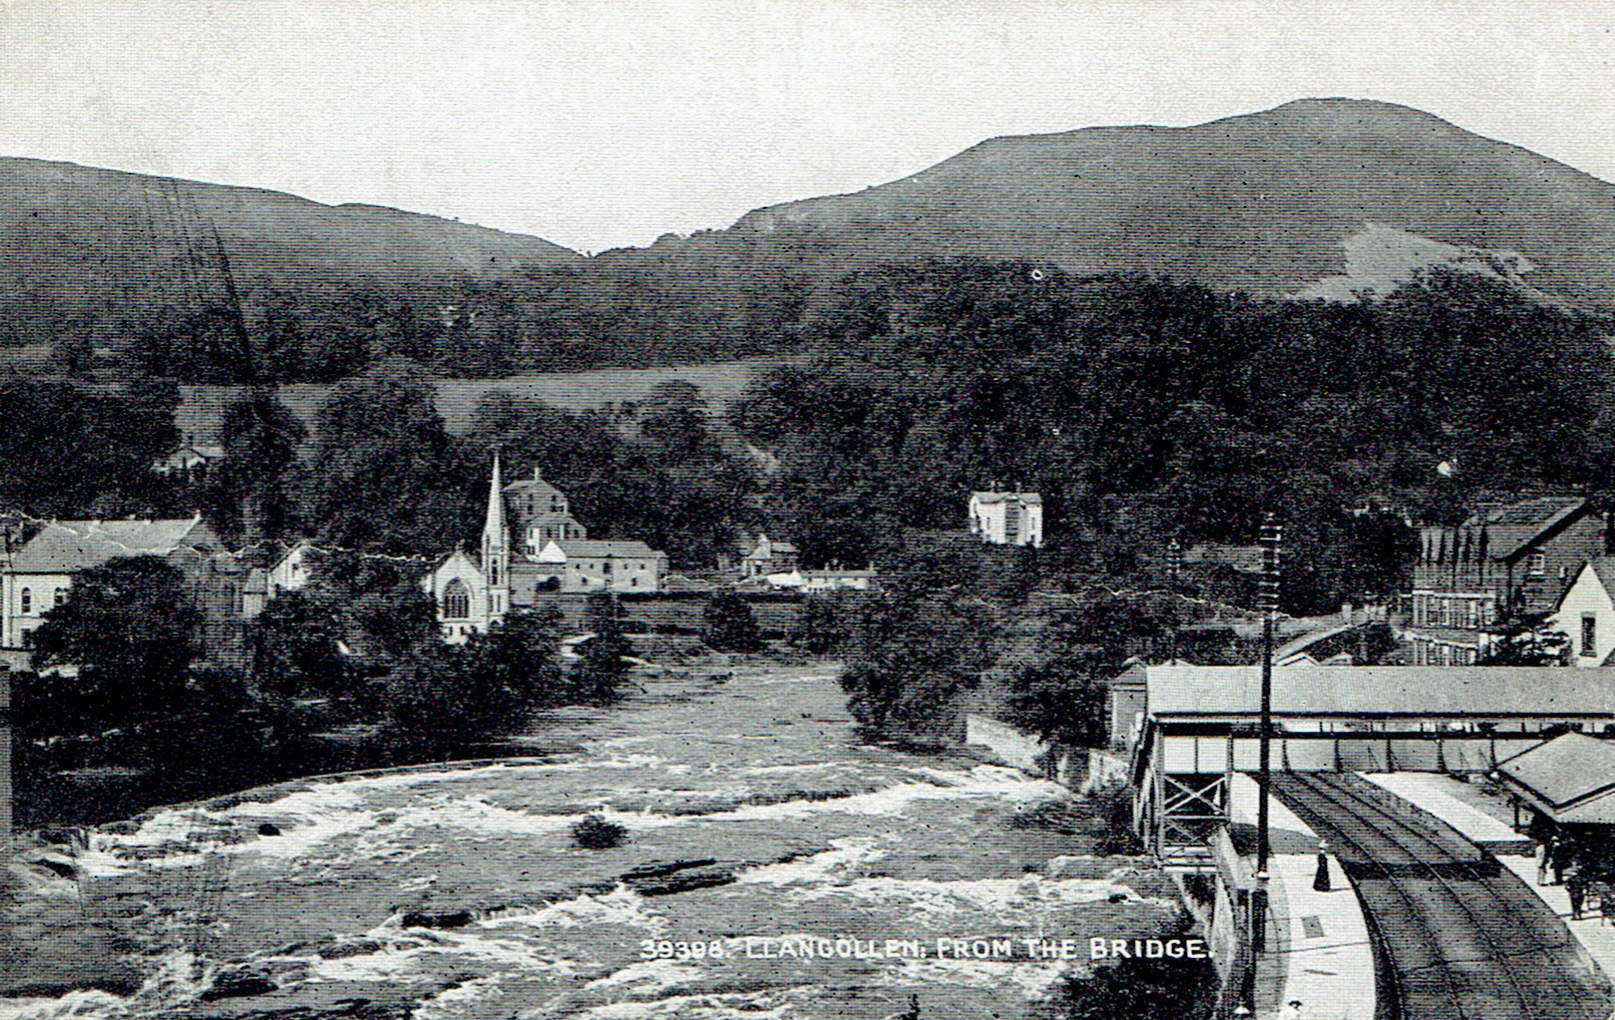 Llangollen from the bridge